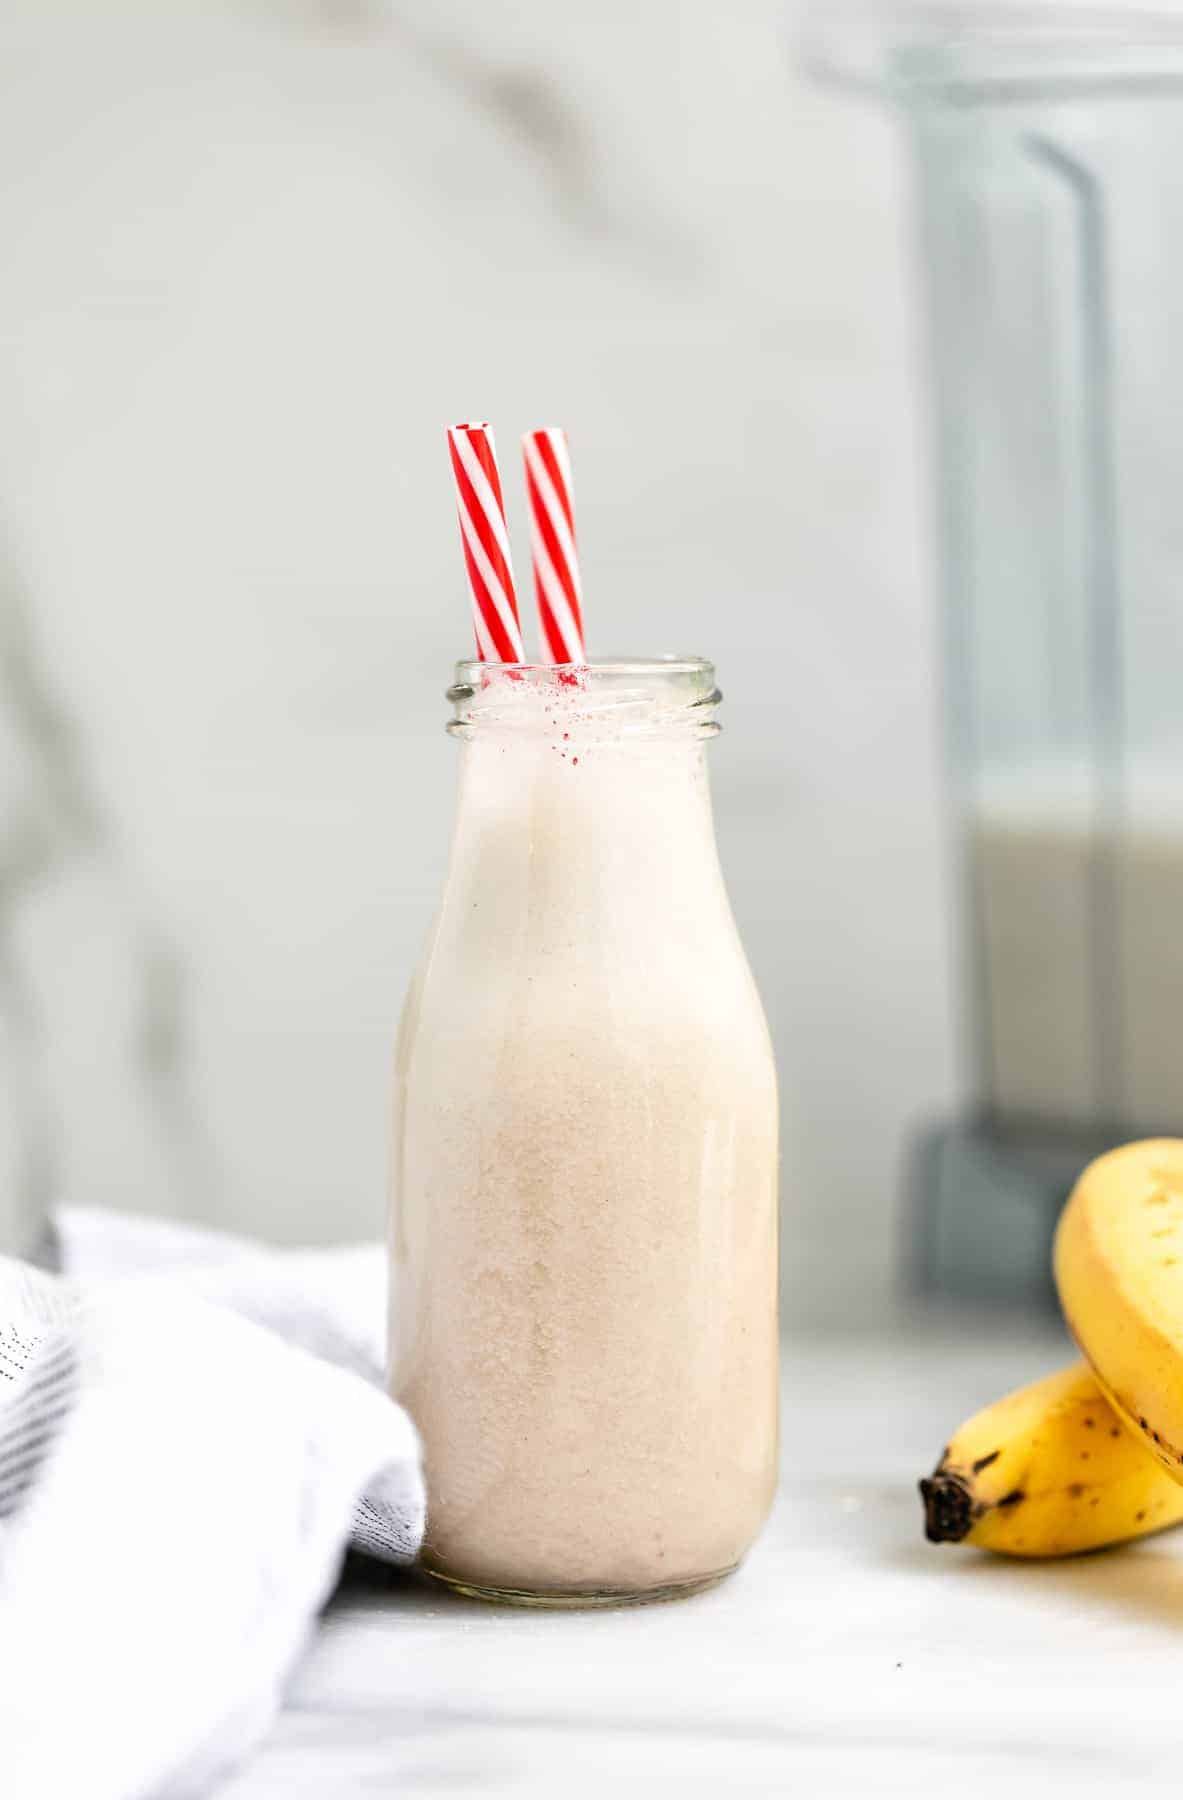 One glass jar with the Korean banana milk.